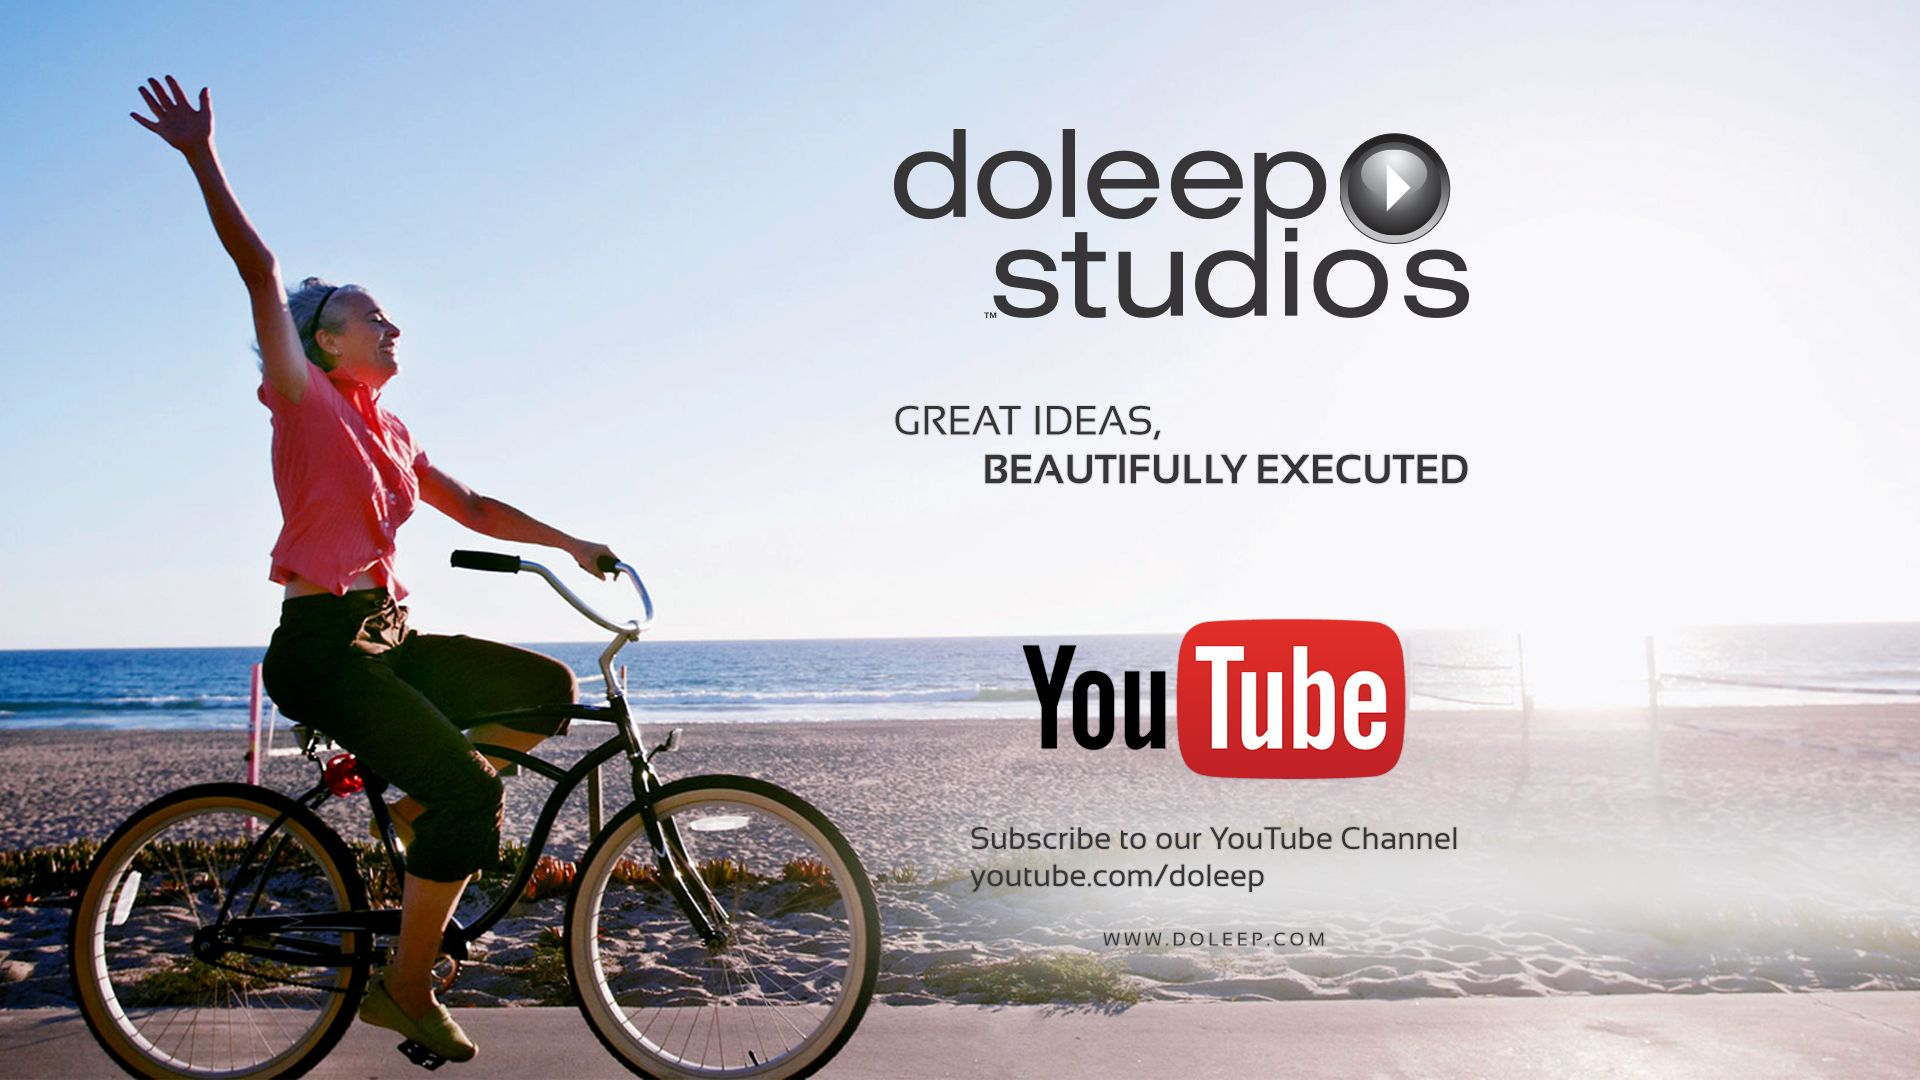 Subscribe to DoLeeP Studios YouTube Channel http://www.youtube.com/doleep http://www.doleep.com #doleepstudios #Socialmedia #digitalmarketing #facebook #twitter #instagram #linkedin #youtube #excellence #business #entrepreneur #fortune #leadership #CEO #achievement #greatideas #quote #vision #foresight #success #quality #motivation #inspiration #inspirationalquotes #domore